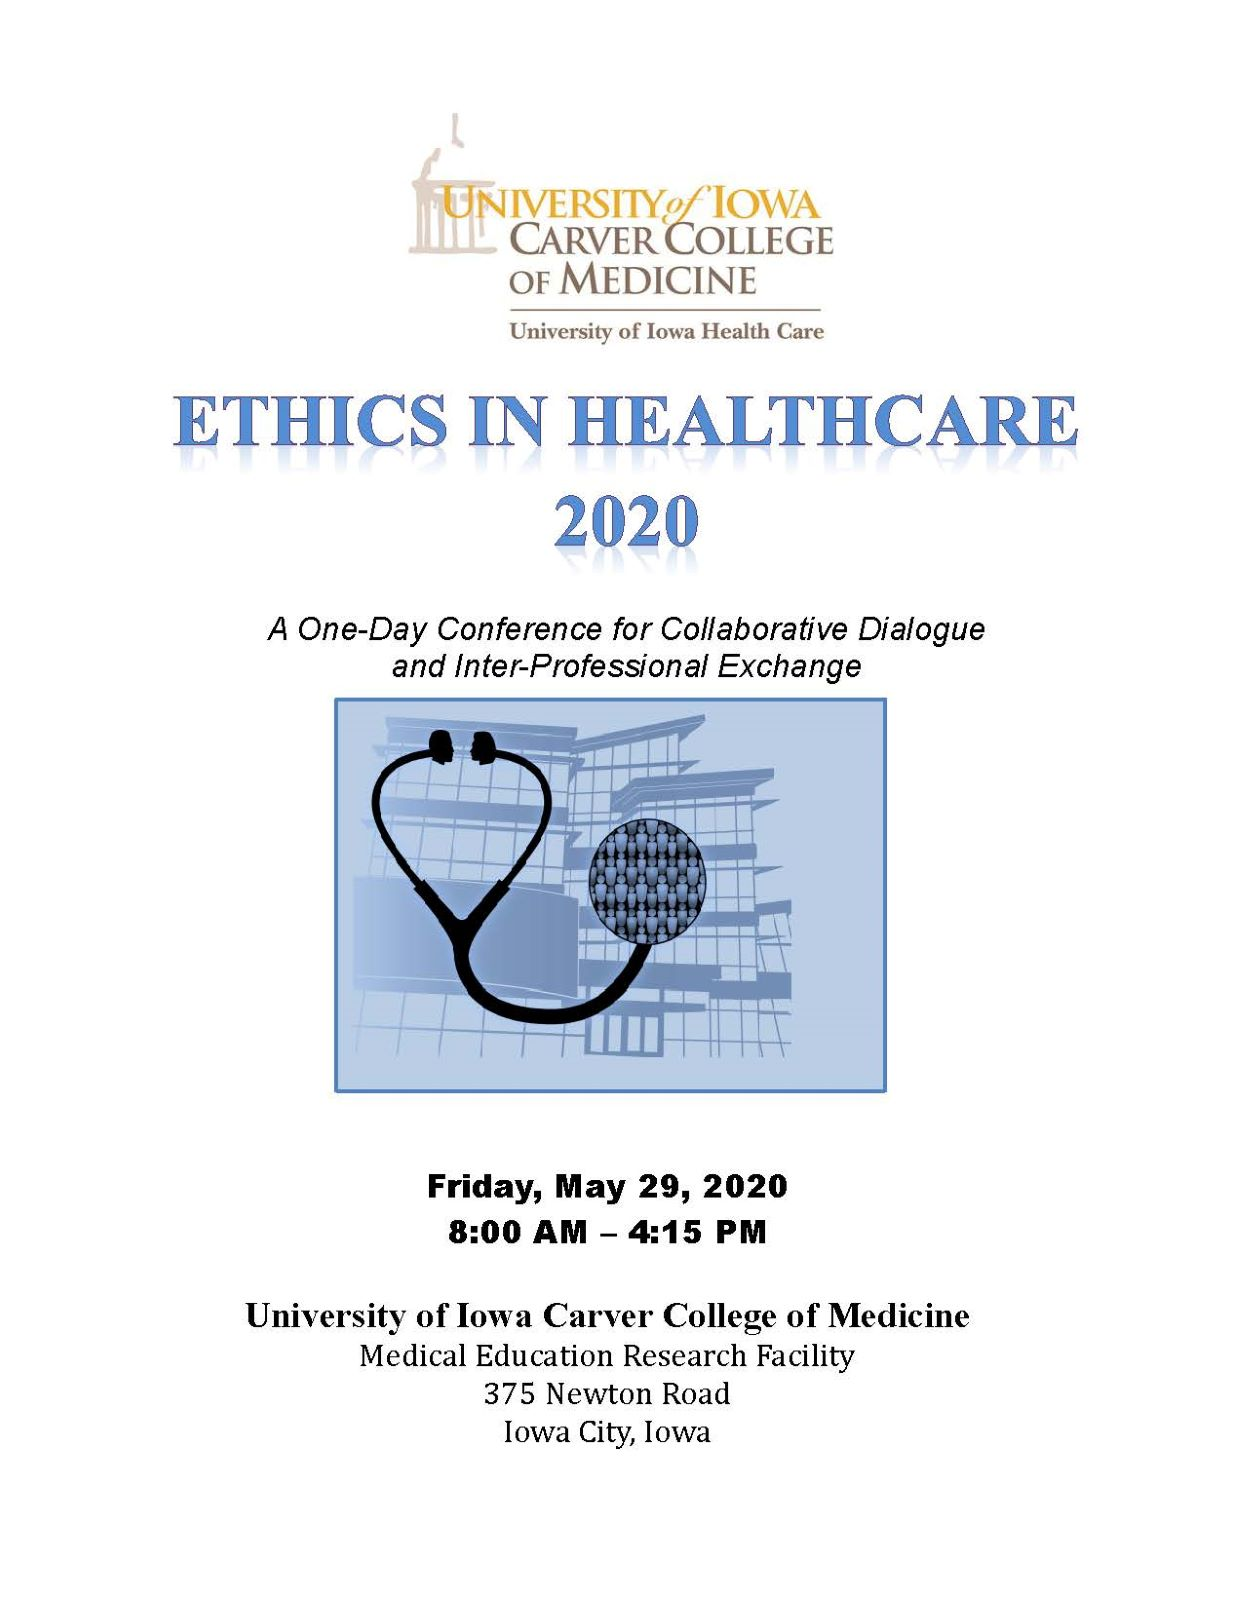 Ethics in Healthcare 2020 Banner